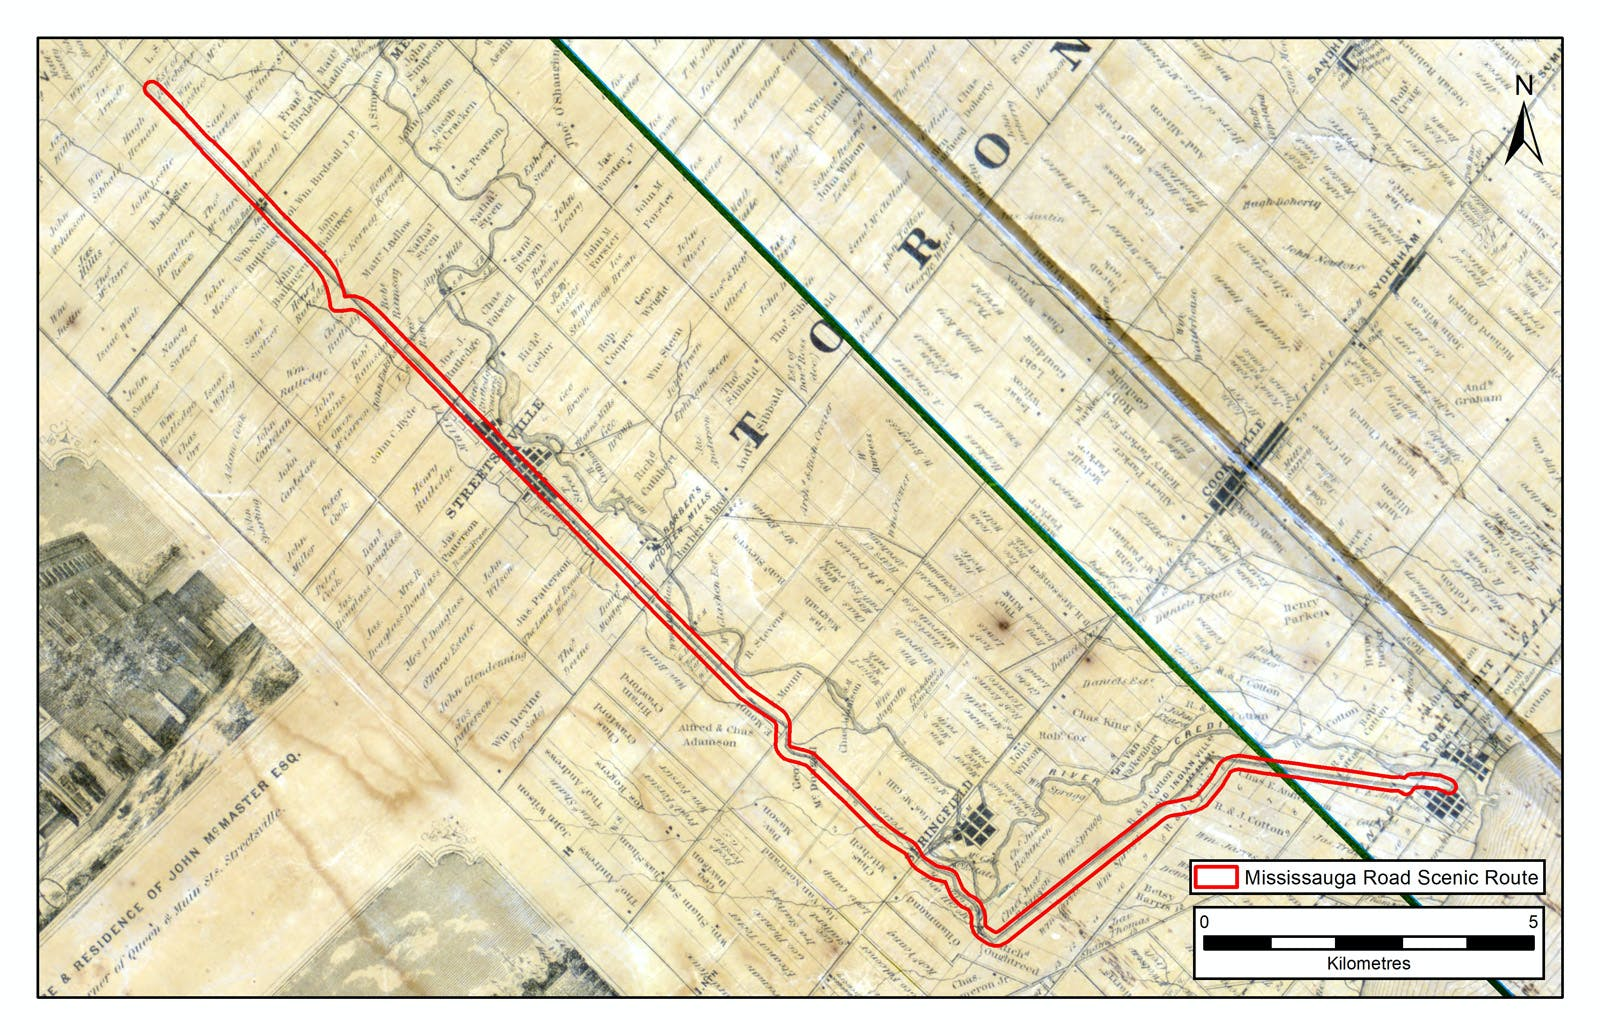 Mississauga Road on historical mapping from 1859